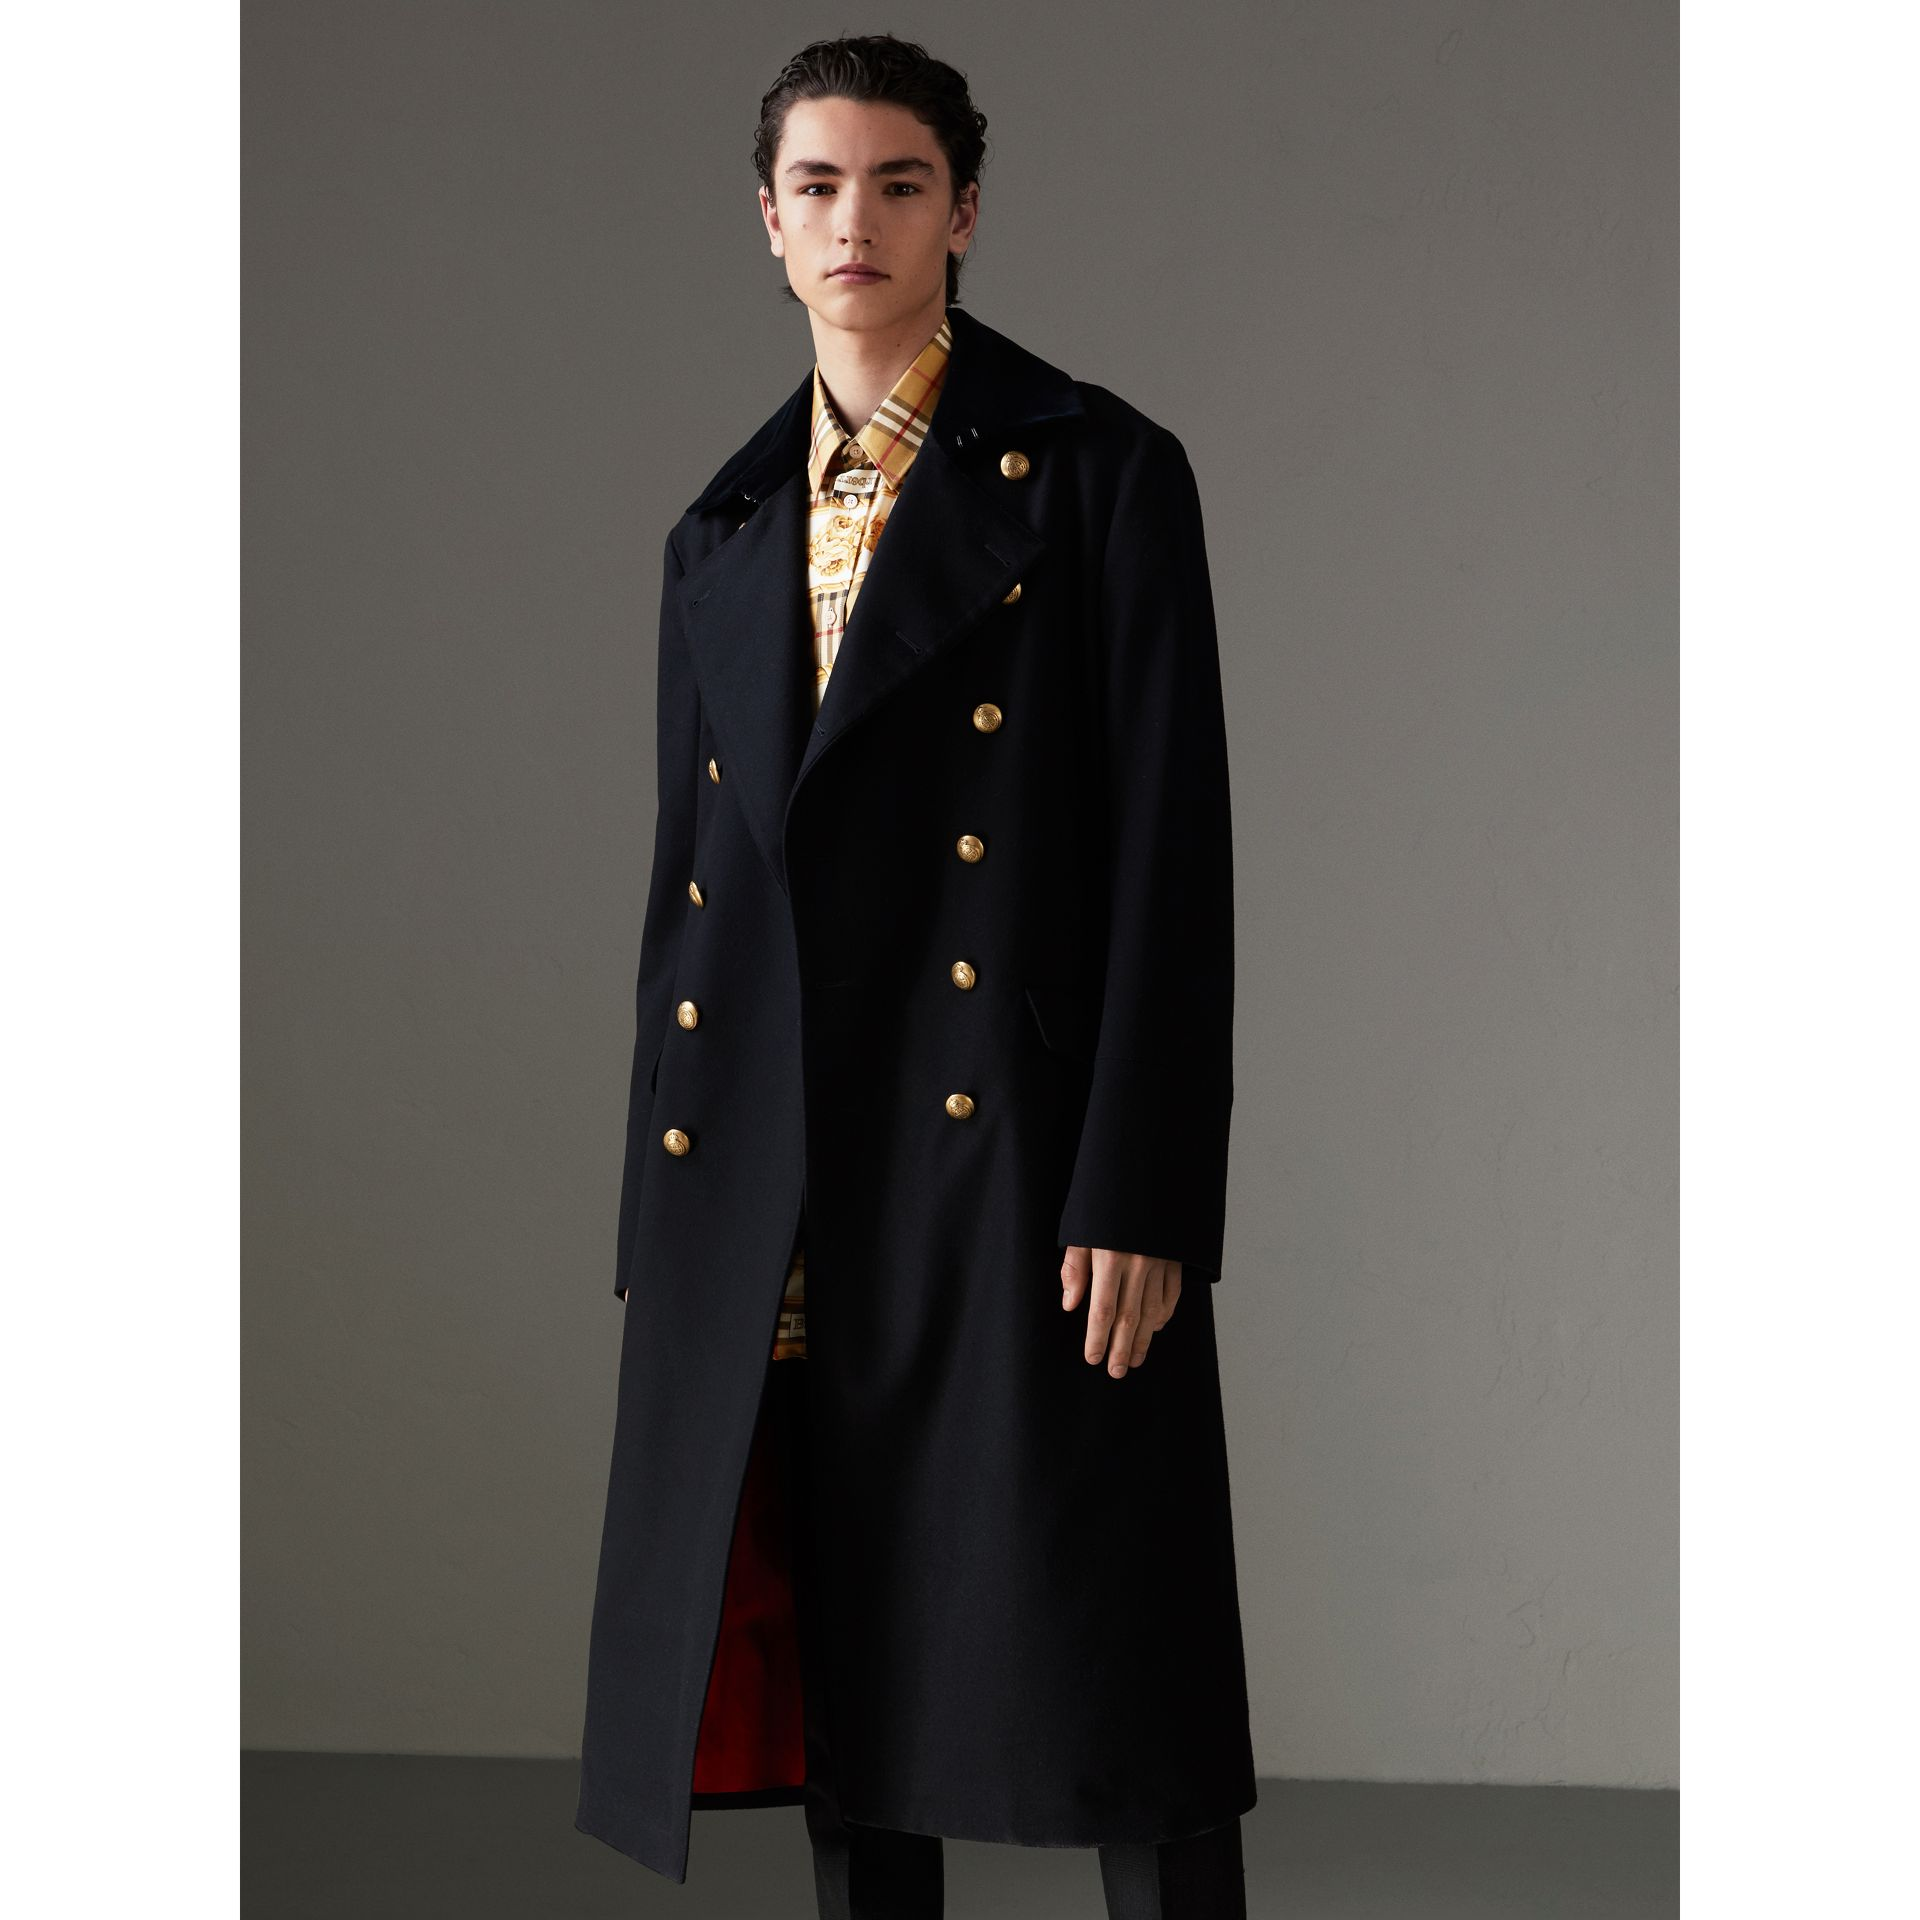 Velvet Collar Doeskin Wool Military Coat in Dark Navy | Burberry - gallery image 5